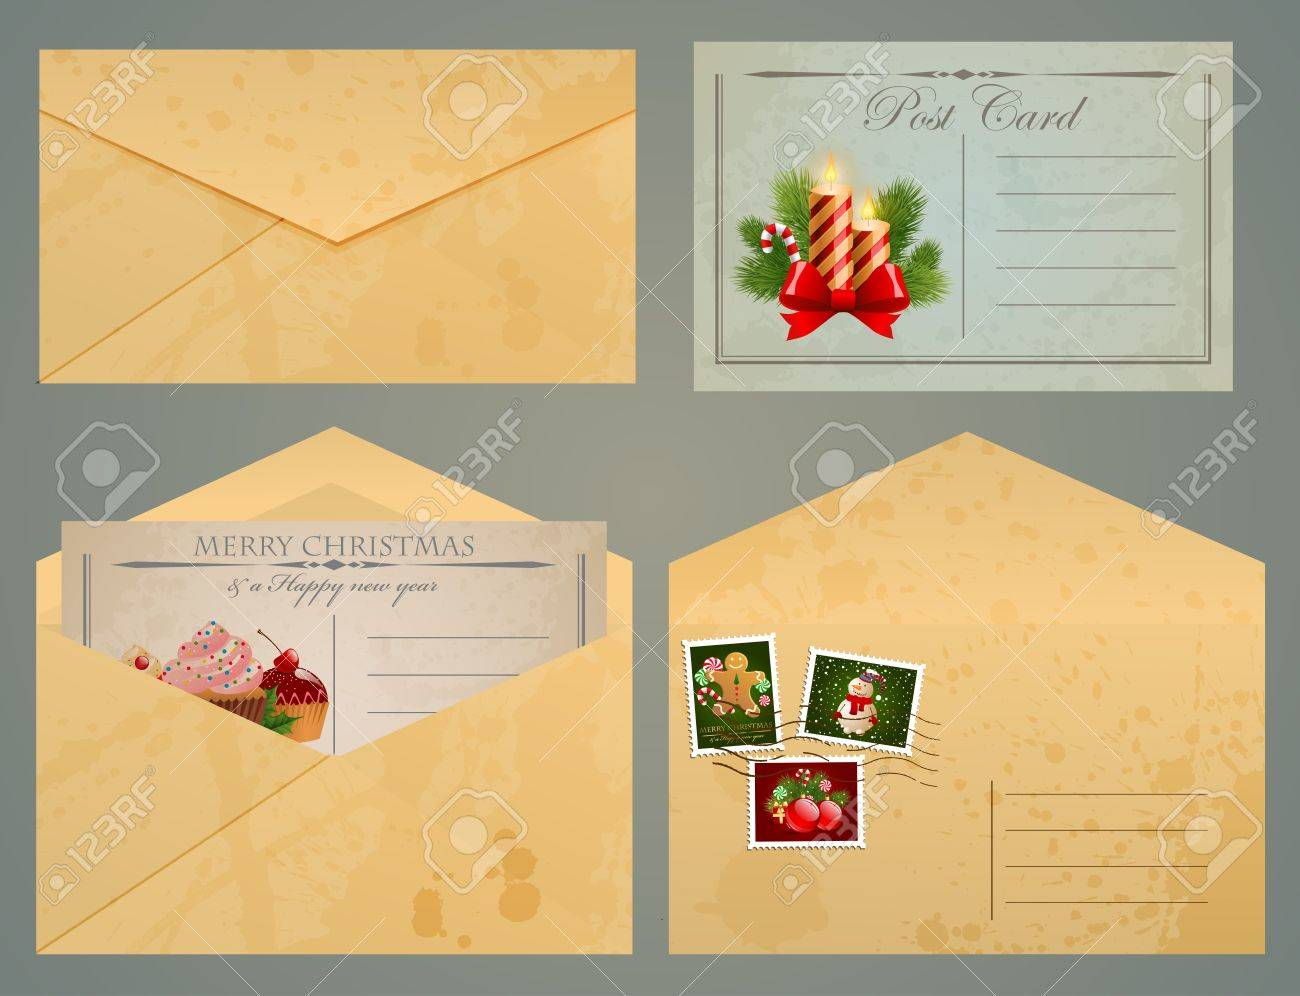 Christmas vintage postcards and envelopes with stamps. Stock Vector - 11656466